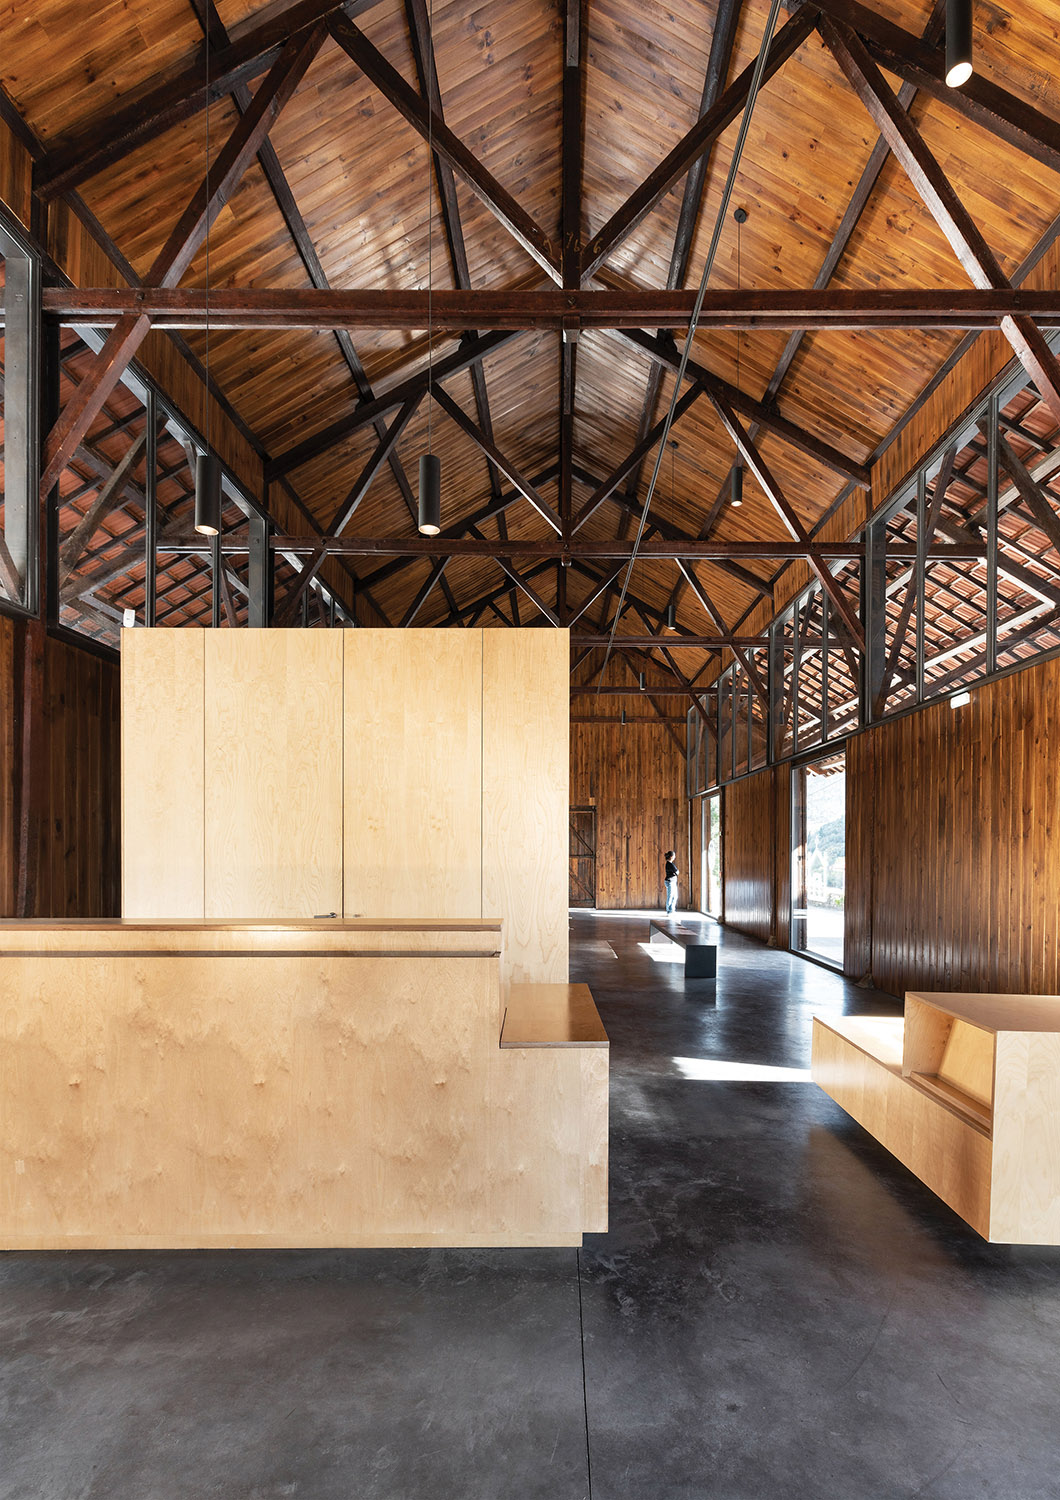 reception, store shelf and wooden container with toilets and storage Luís Ferreira Alves